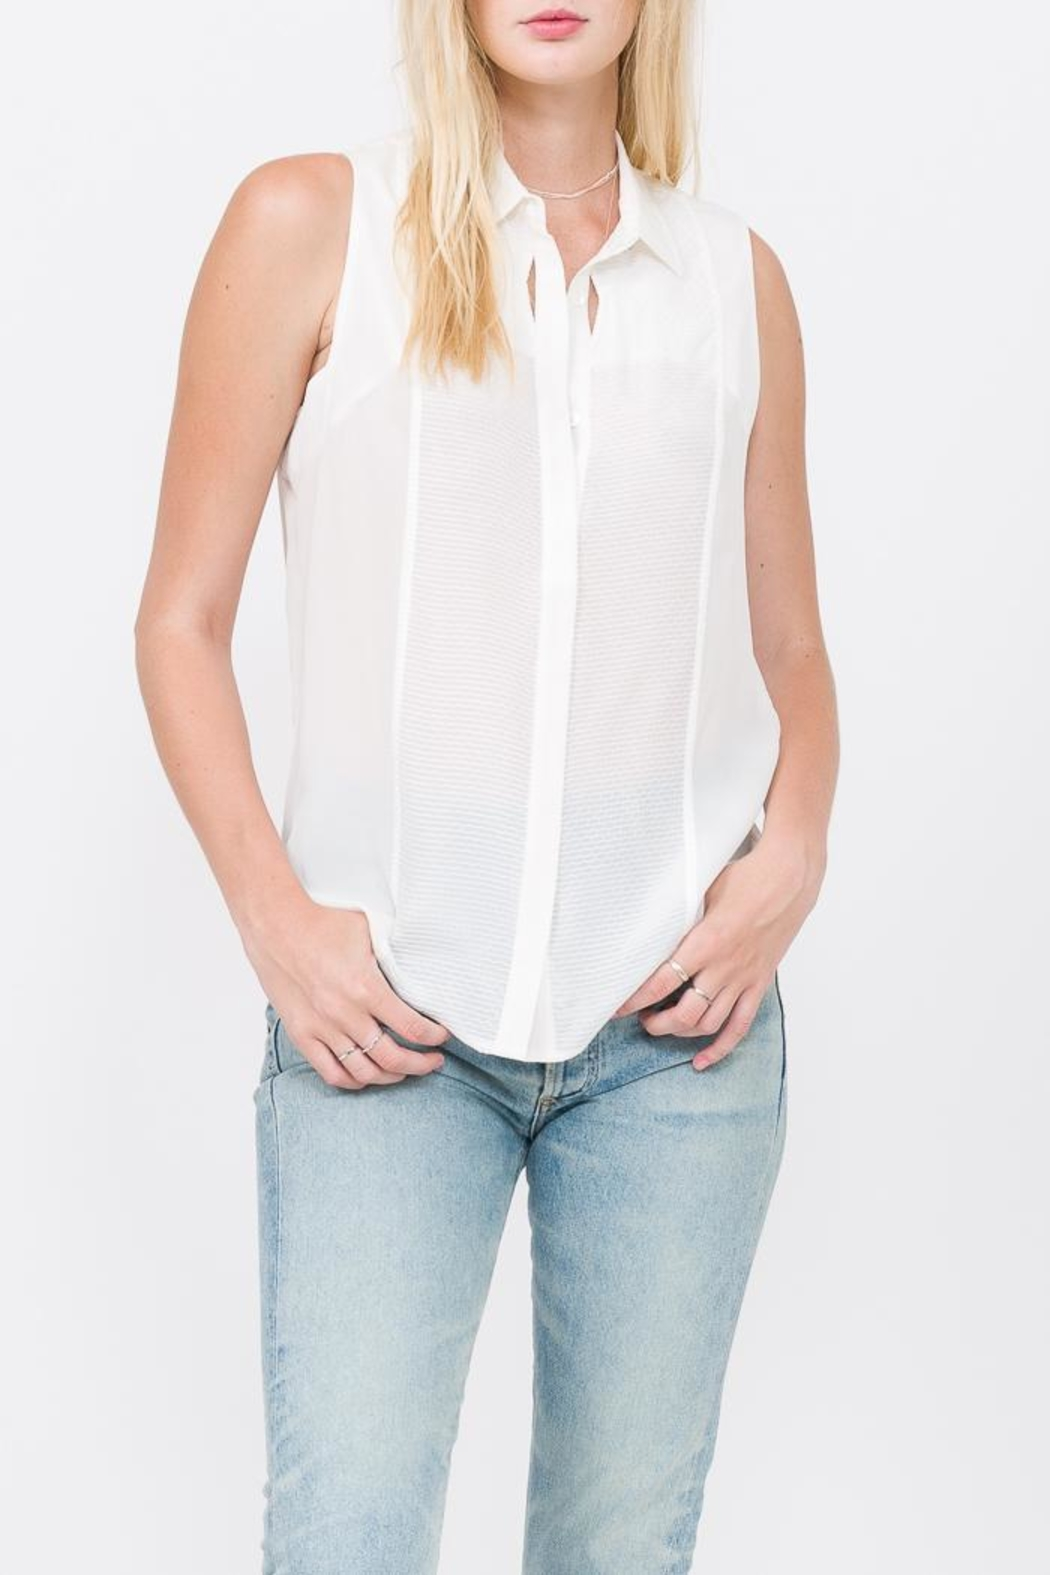 QUINN Chelsea Button Up Top - Main Image